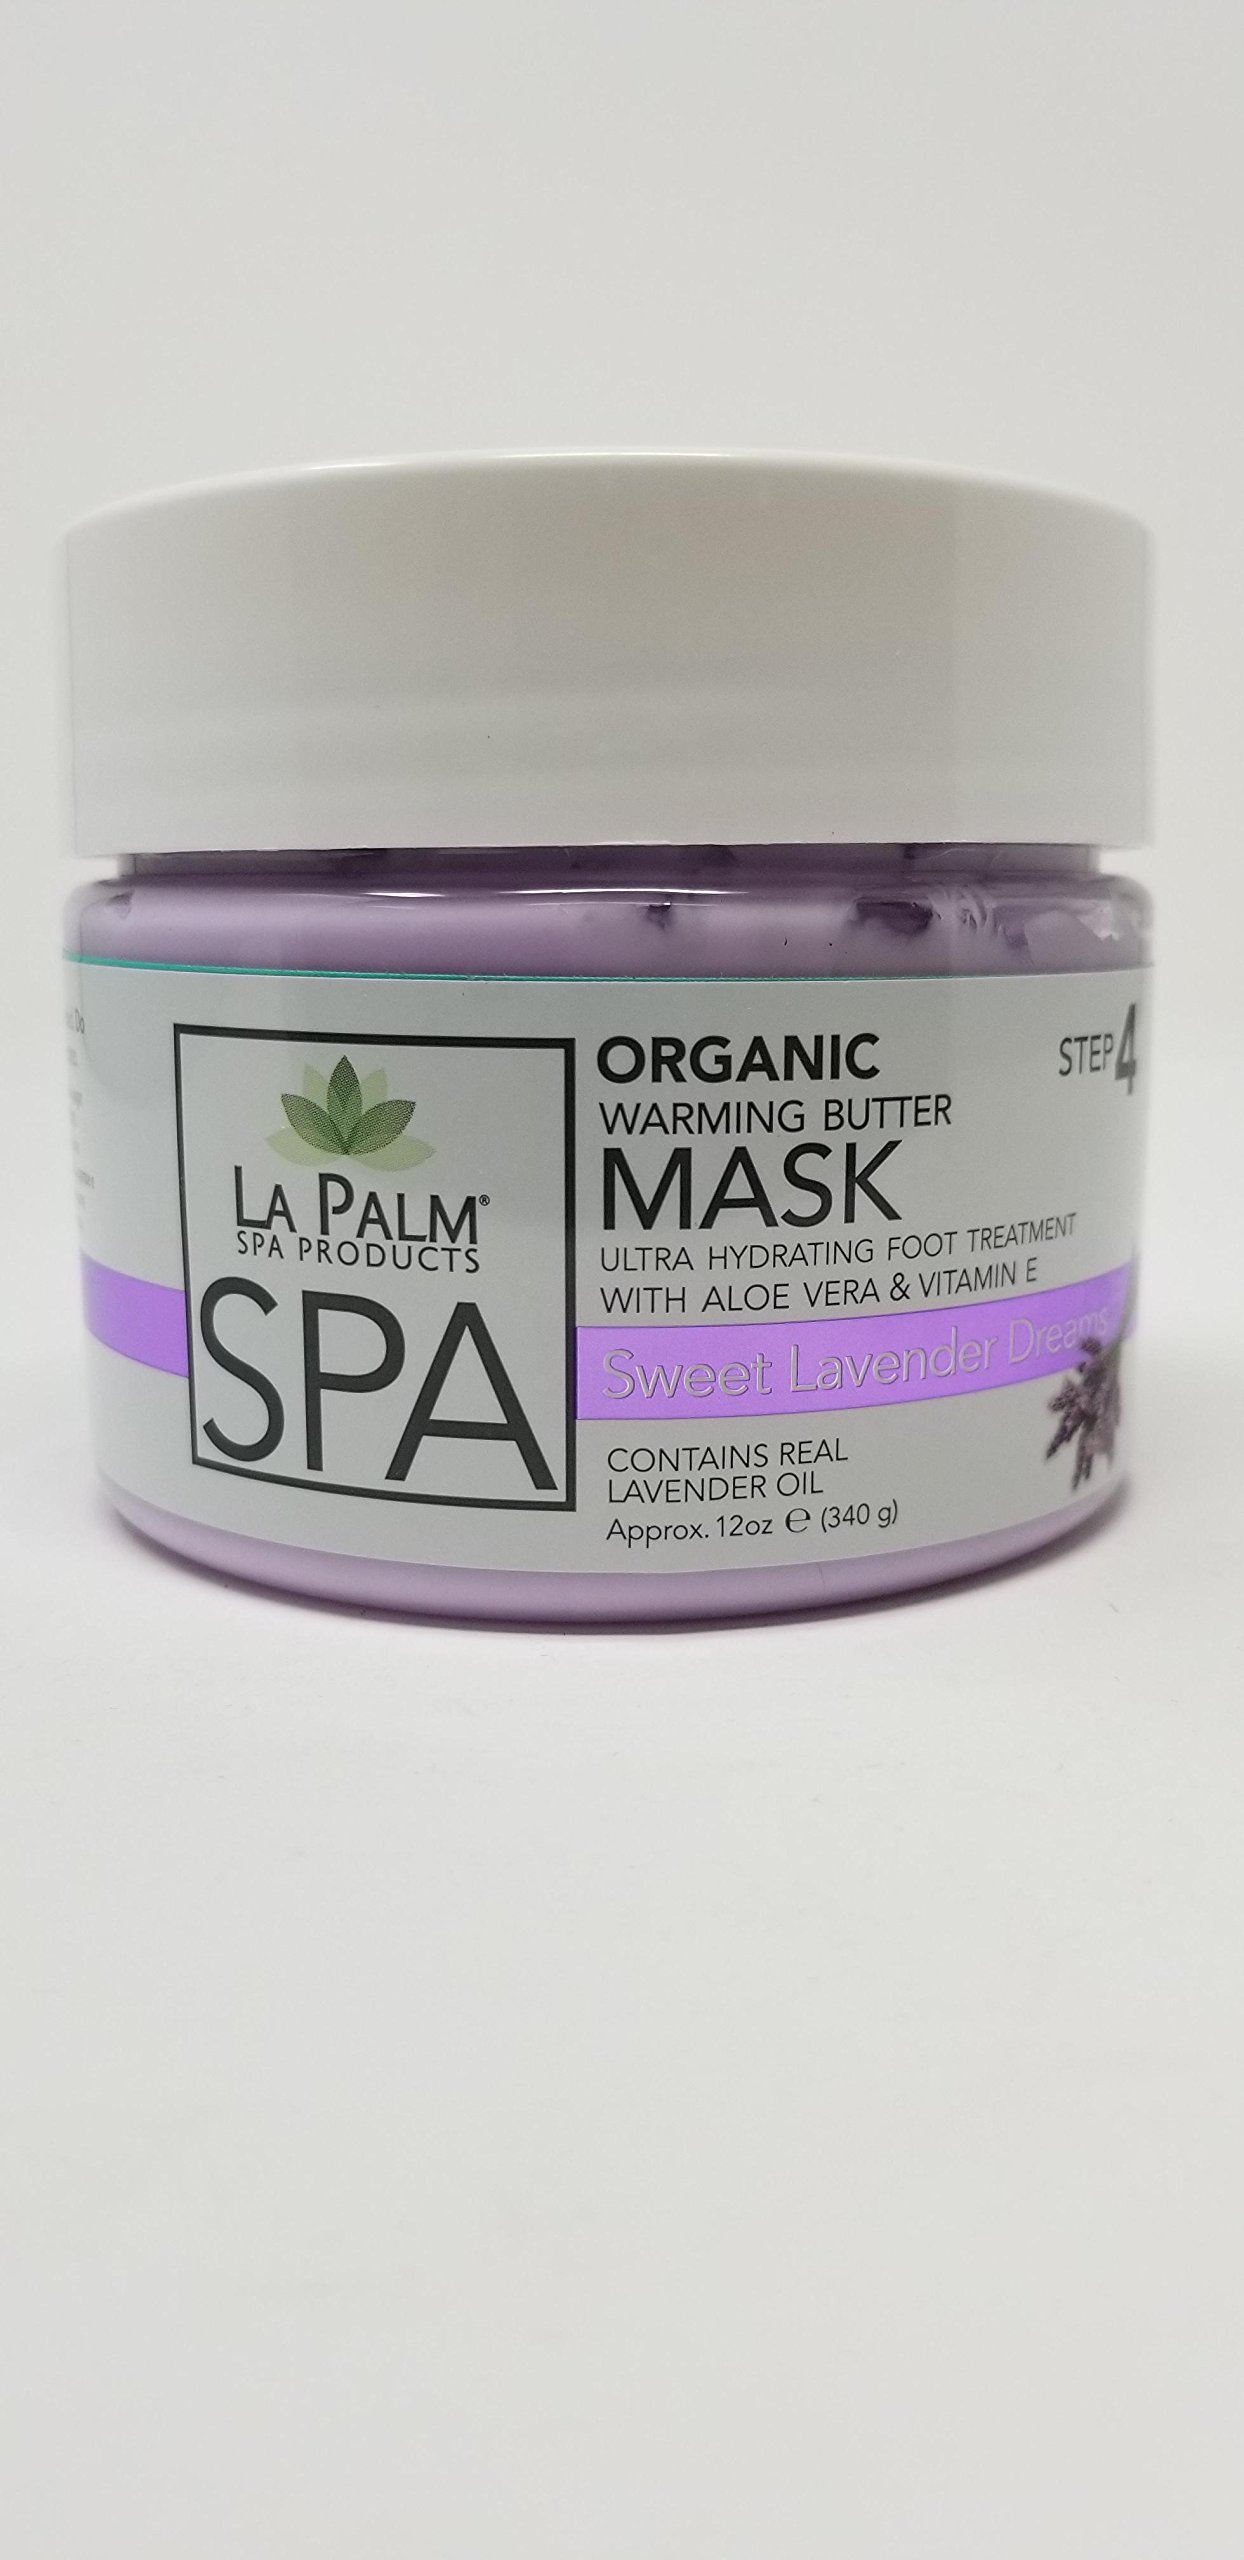 Organic Warming Butter Mask - Sweet Lavender Dreams